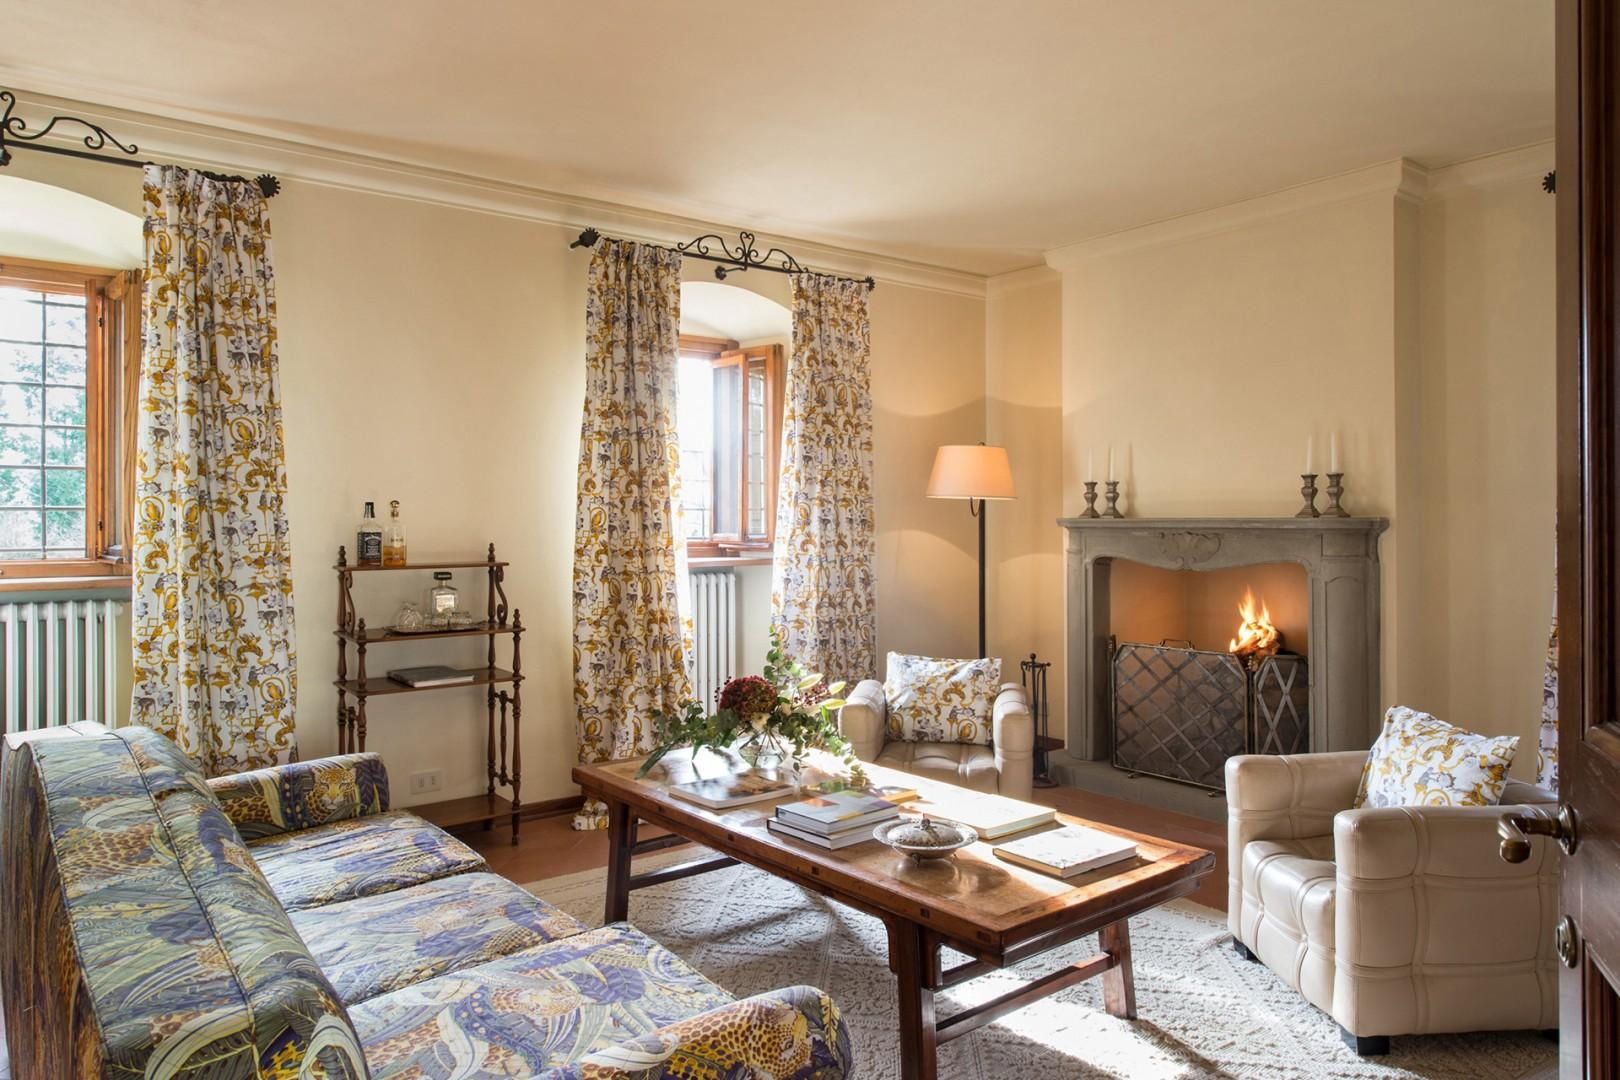 Highlight of the living areas is the cozy fireplace.